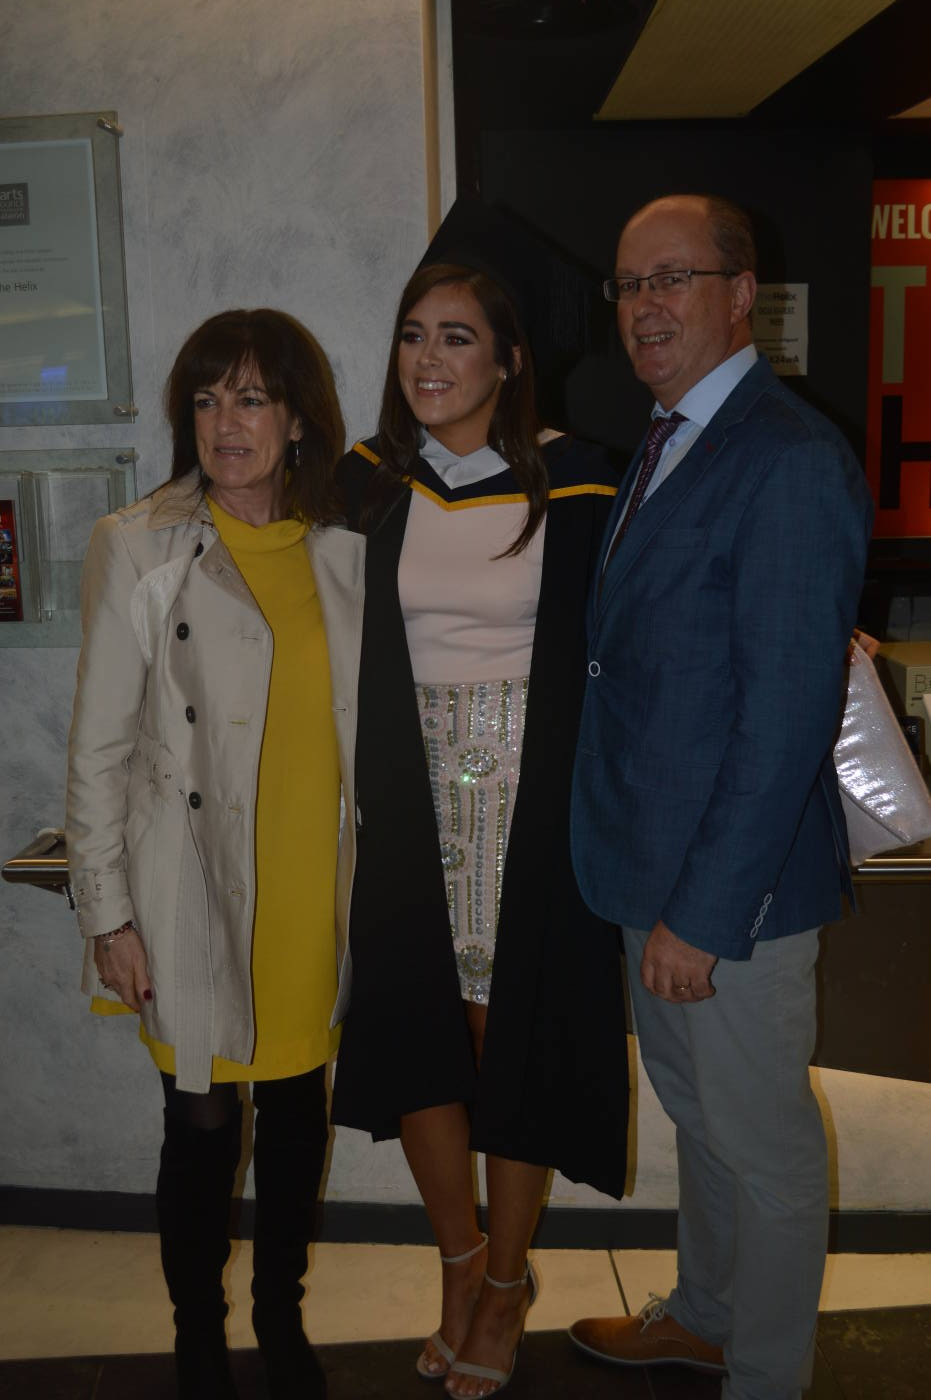 MY COLLEGE GRADUATION – ALANA KELLY CAHILL